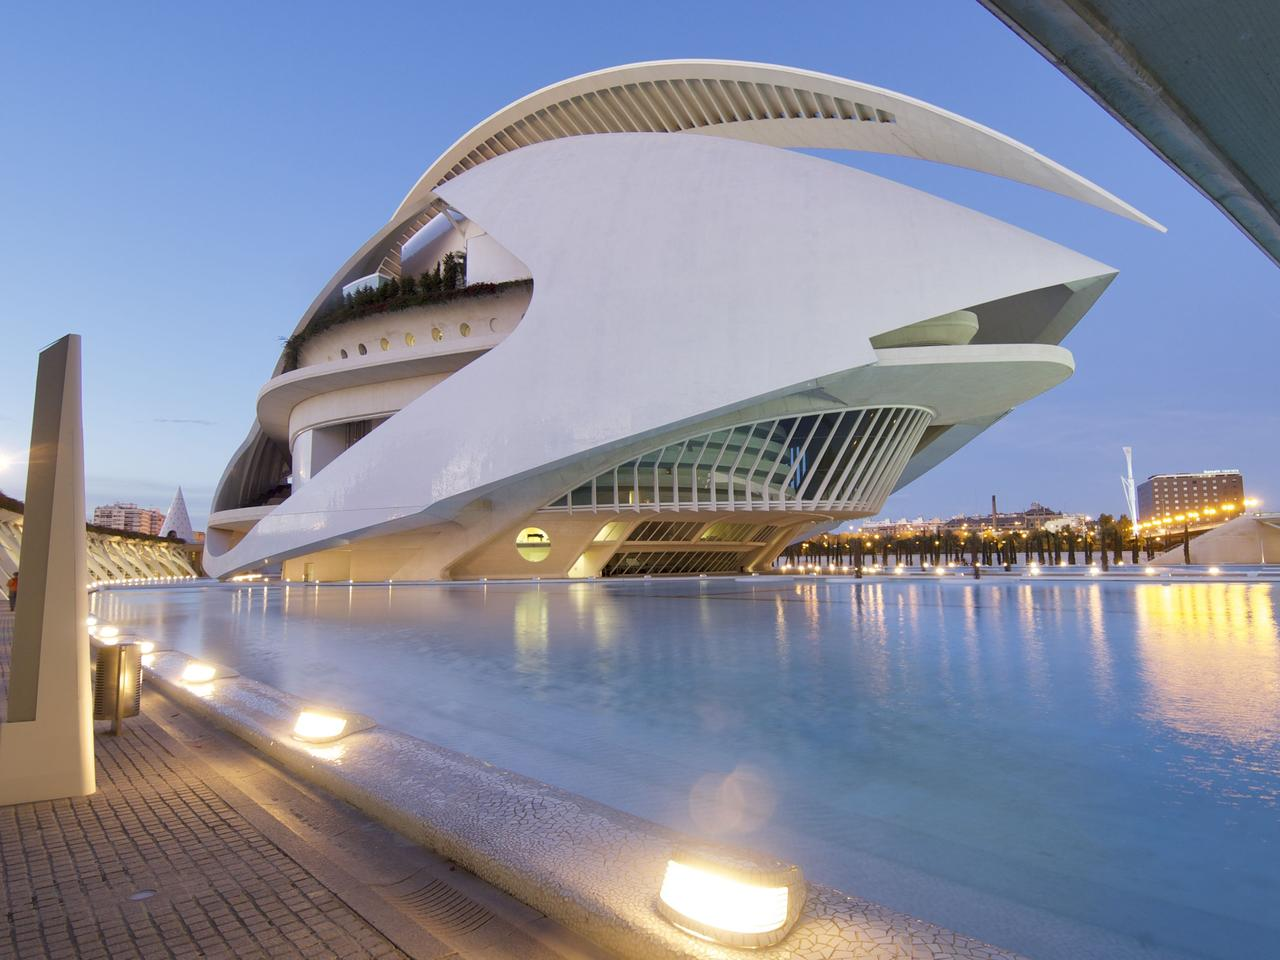 City of Arts and Sciences in Valencia, Spain. For Escape travel story about Europe's undiscovered hidden gems. Please credit Thinkstock